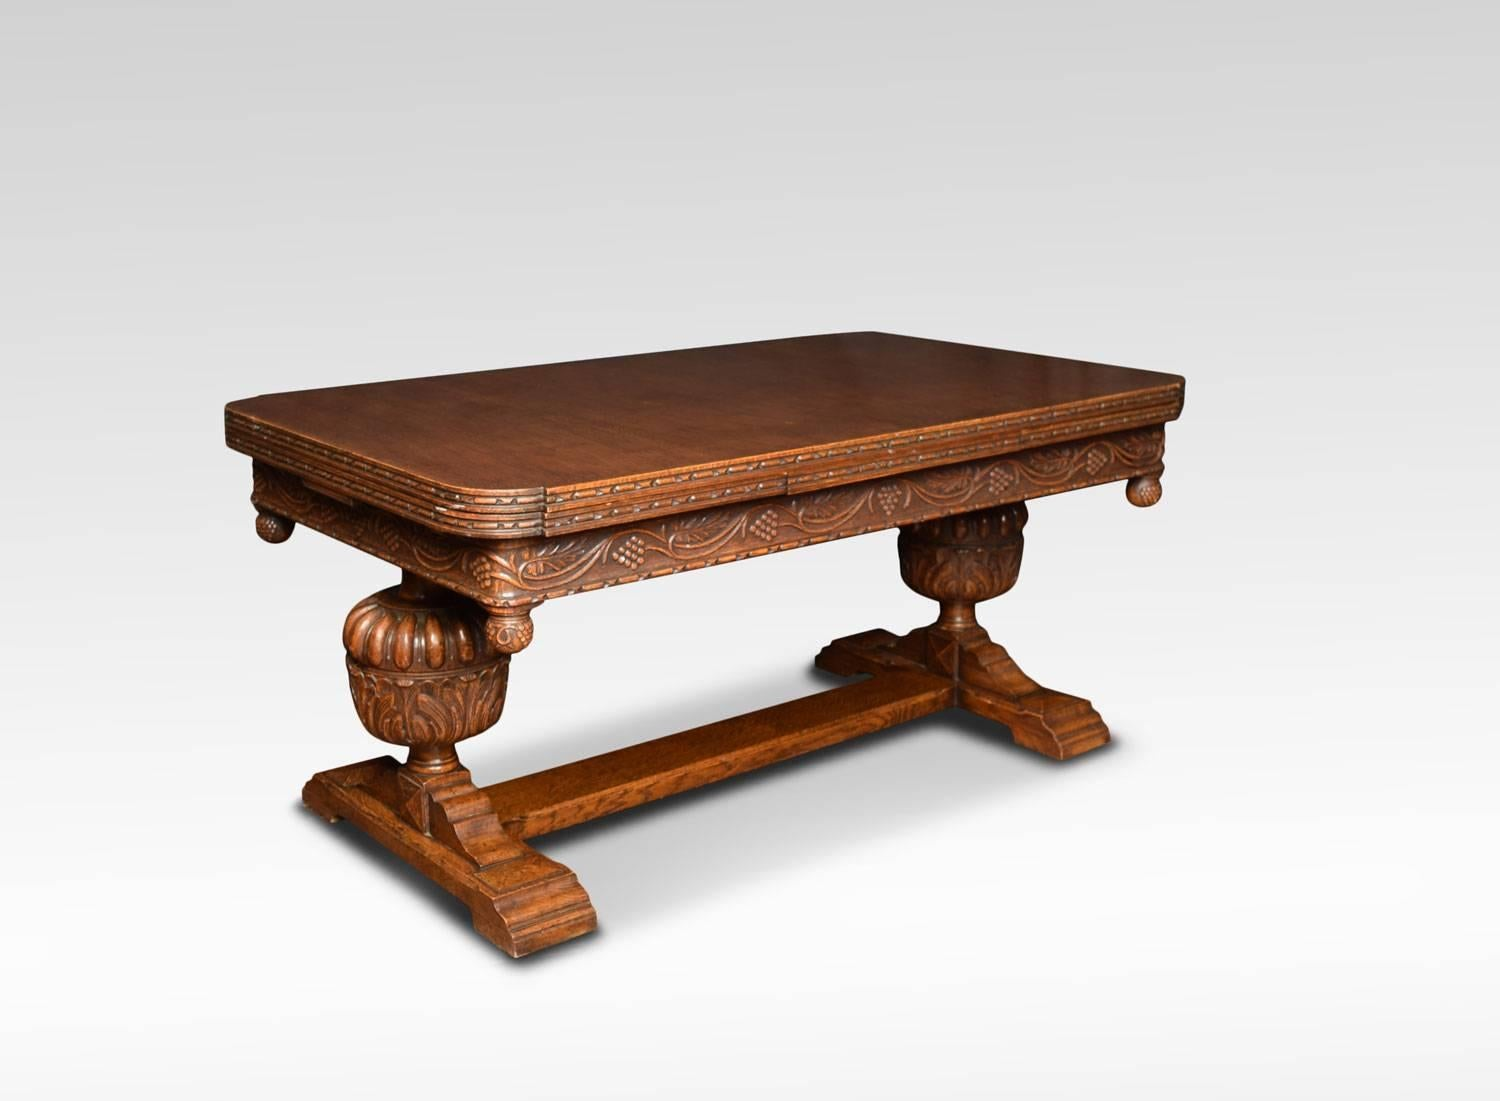 Impressive Oak Drawer Leaf Table The Large Rectangular Pull Out Top With  Rounded Corners To